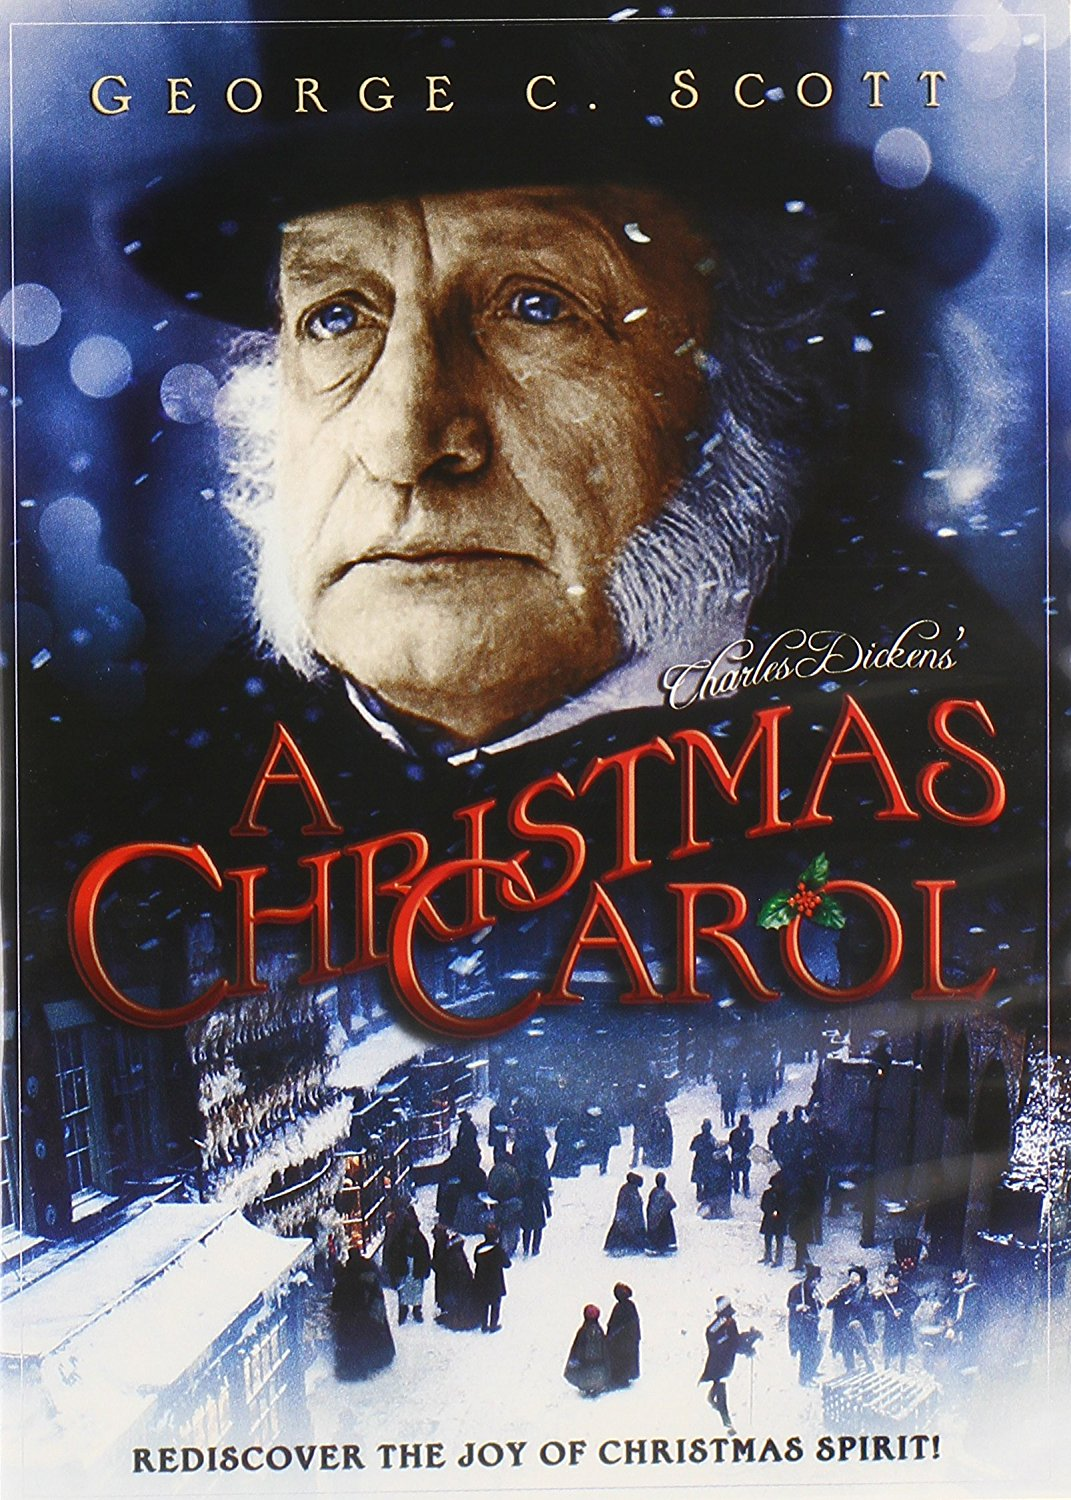 5 Movie Adaptations Of A Christmas Carol And Why They